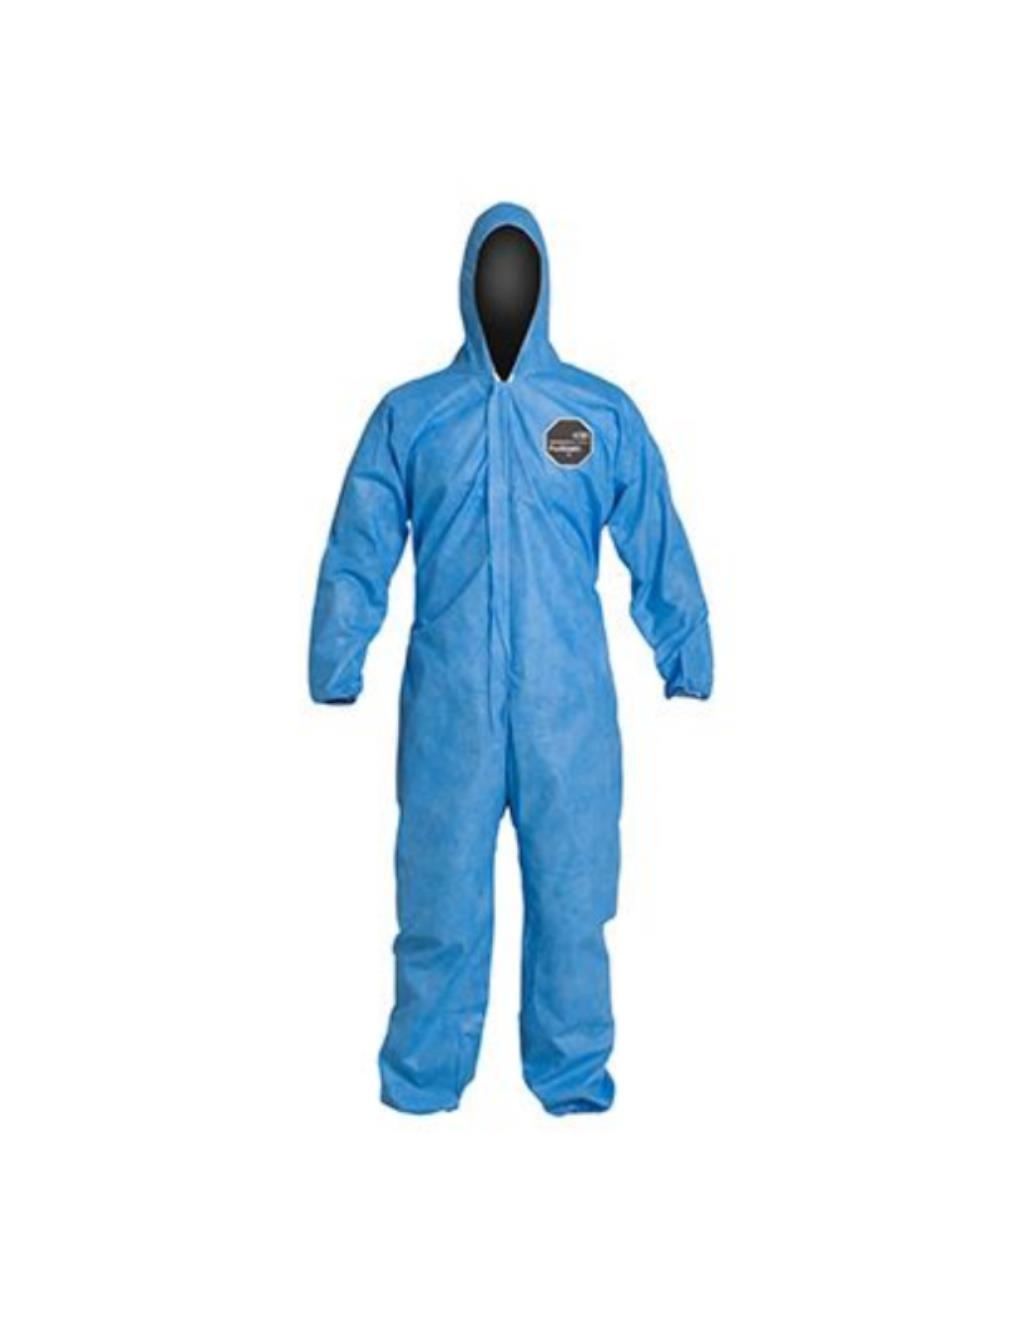 Dupont Film Laminate General Purpose Coveralls, Size XL -  5-Pack (30% OFF)